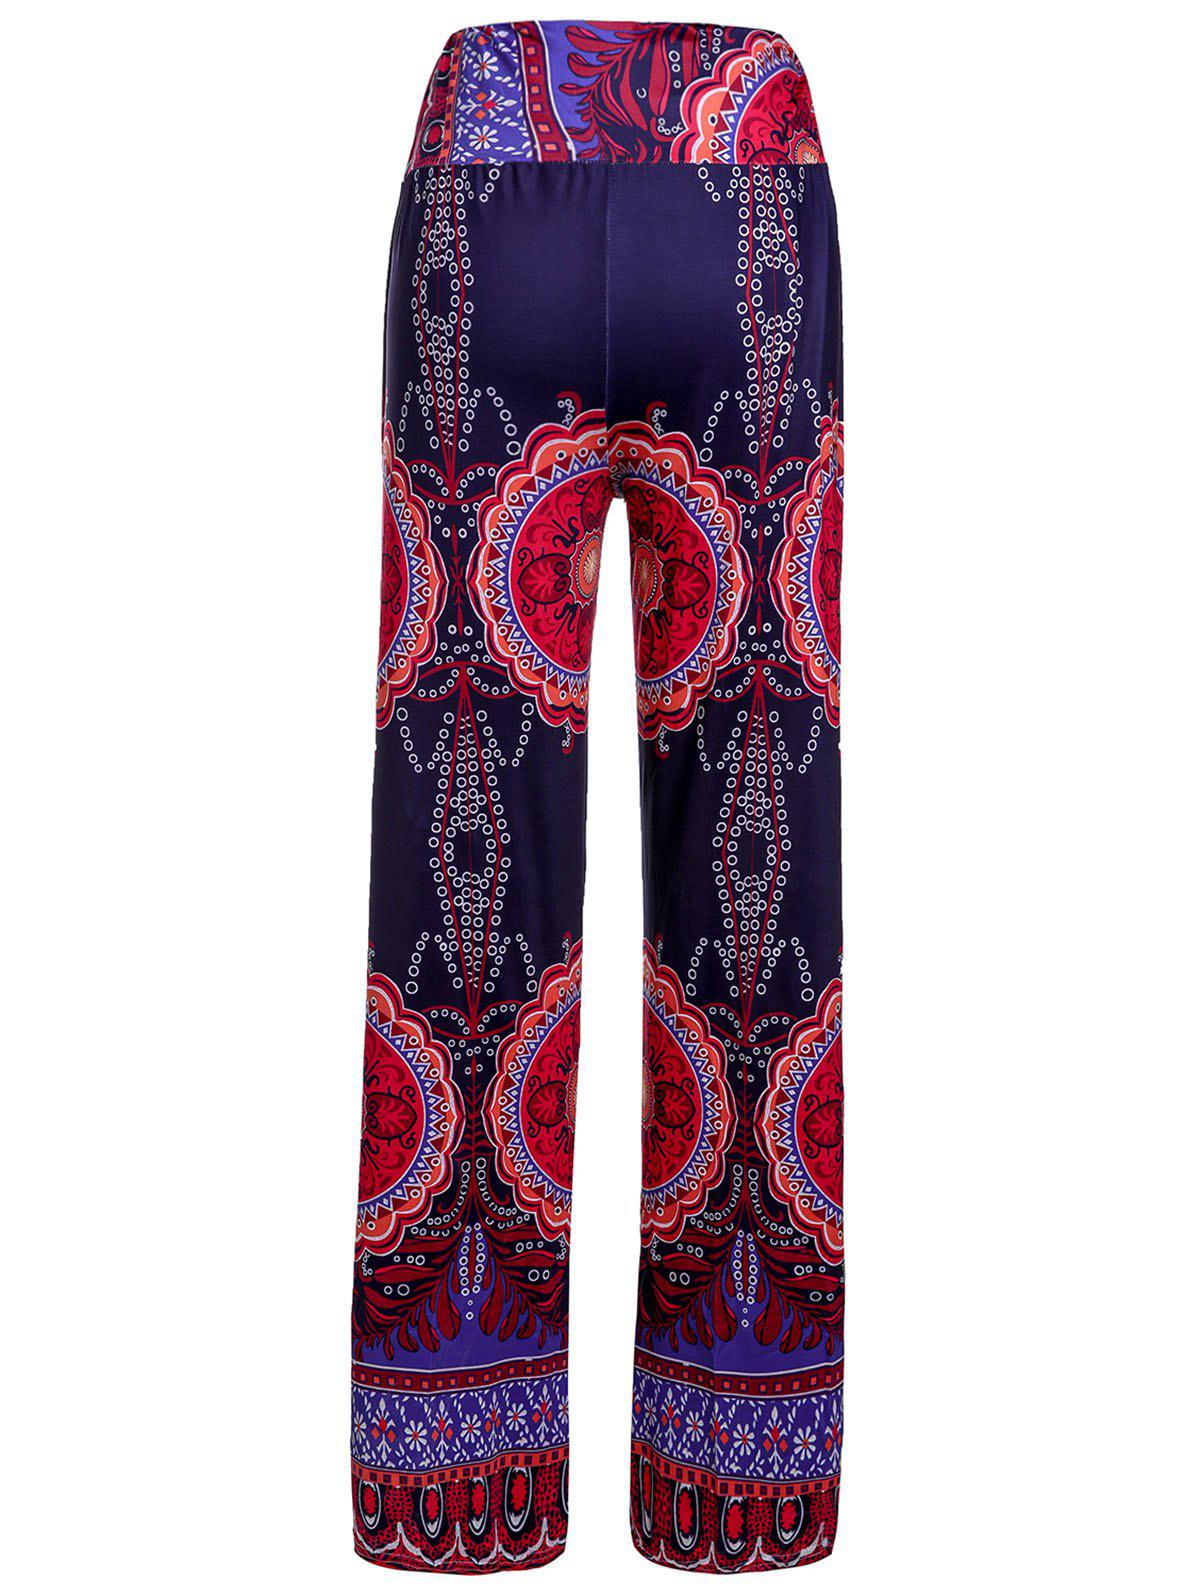 Ethnic Style Floral Print Elastic Waist Exumas Pants For Women 2018 new headbands for women print chiffon boho ethnic style elastic hairbands lady hair ornament holder hair bands accessories